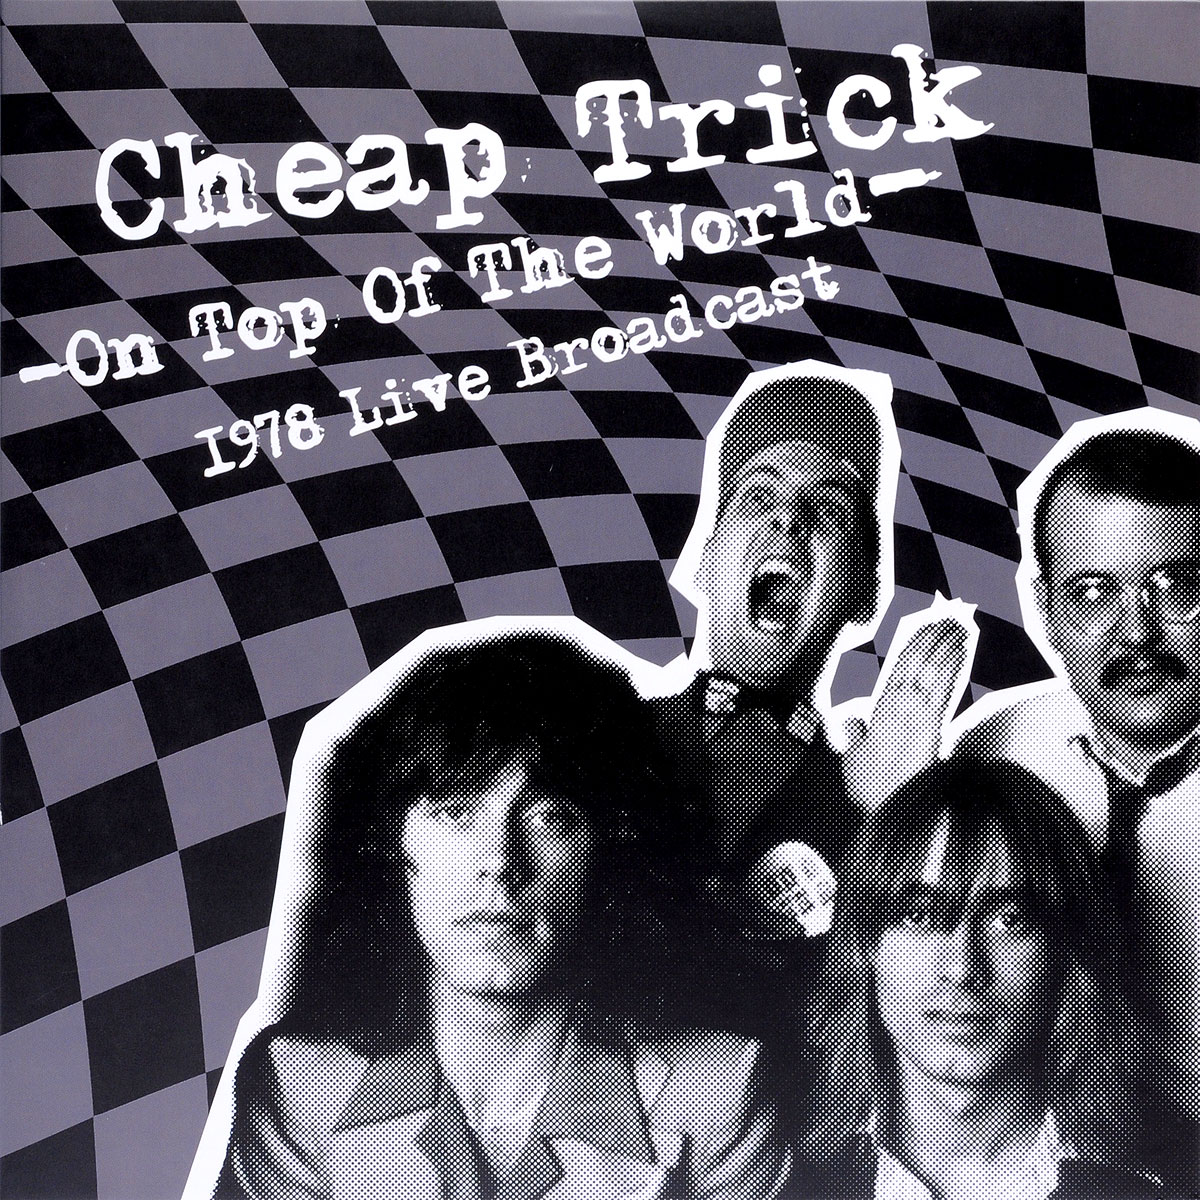 Cheap Trick Cheap Trick. On Top Of The World. 1978 Live Broadcast (2 LP) extra cheap отзывы